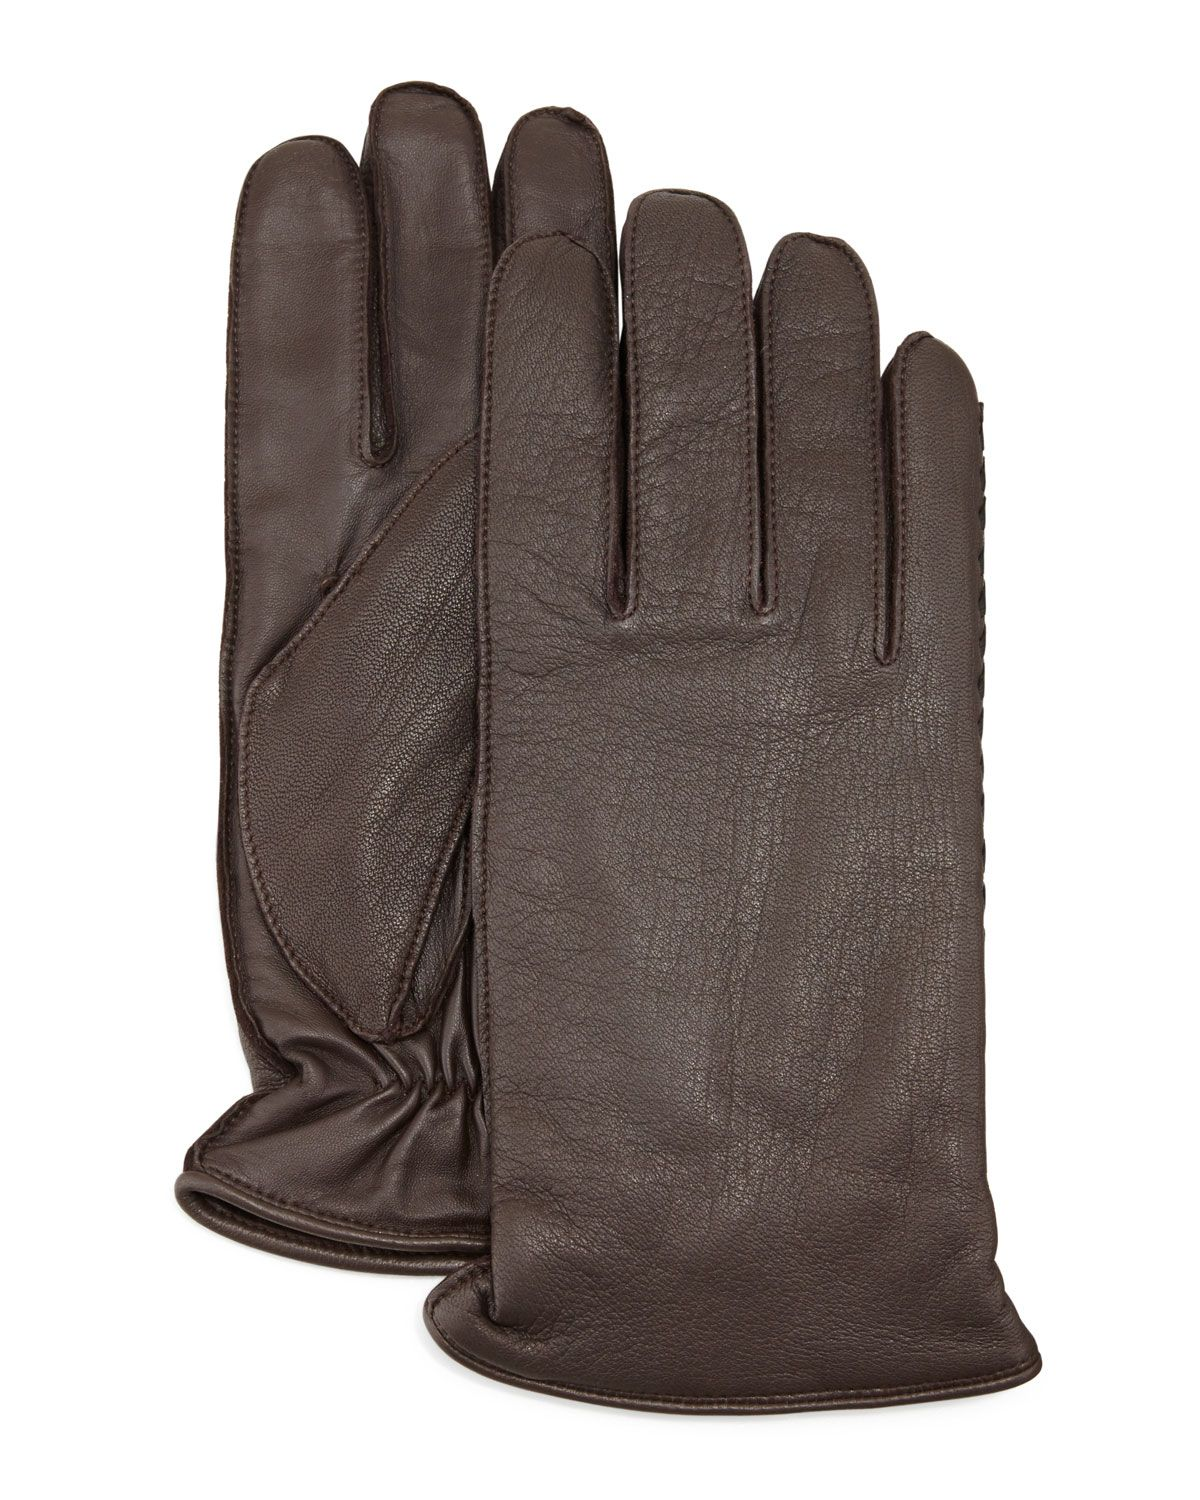 Womens leather gloves au - Whip Tech Leather Gloves Brown Women S Size Large Ugg Australia